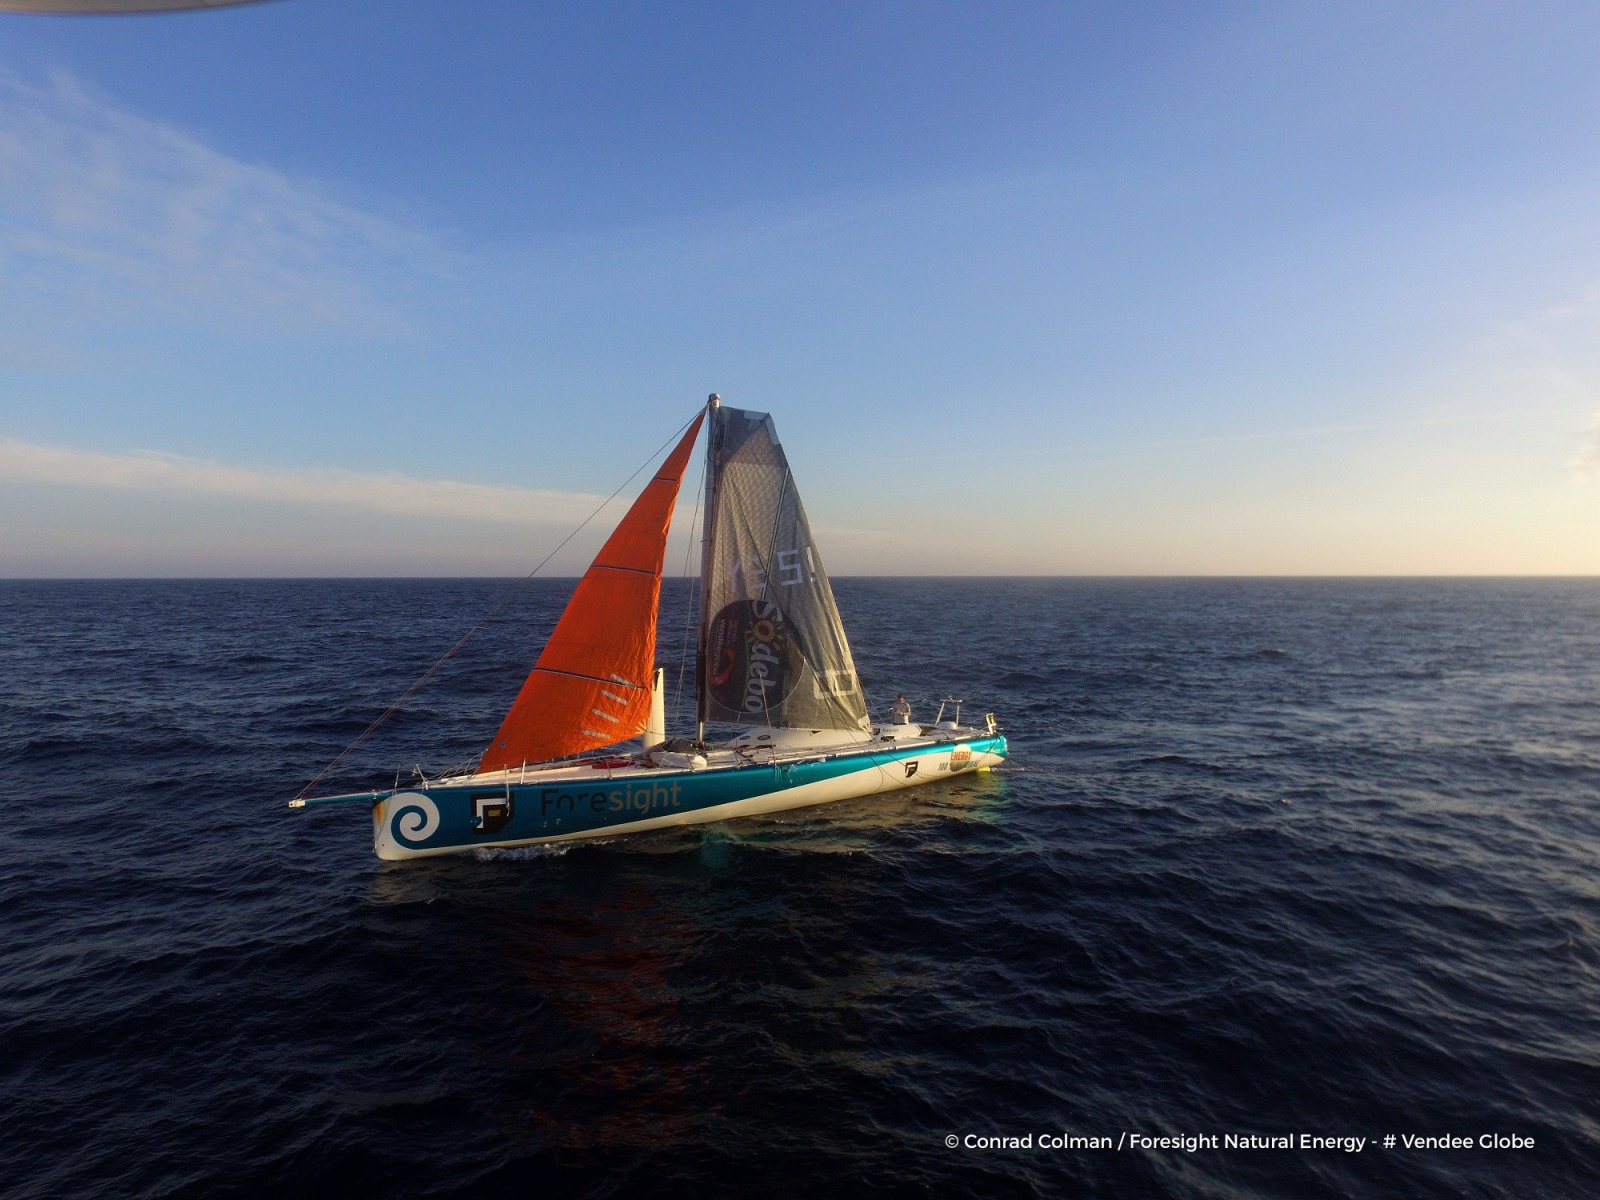 Vendée Globe 2016! - Page 3 Photo-sent-from-the-boat-foresight-natural-energy-on-february-17th-2017-photo-conrad-colmanphoto-envoyee-depuis-le-bateau-foresight-natural-energy-le-17-fevrier-2017-photo-conrad-colmanphoto-by-drone-of-the-boat-refitted-under-the-sun-r-1600-1200